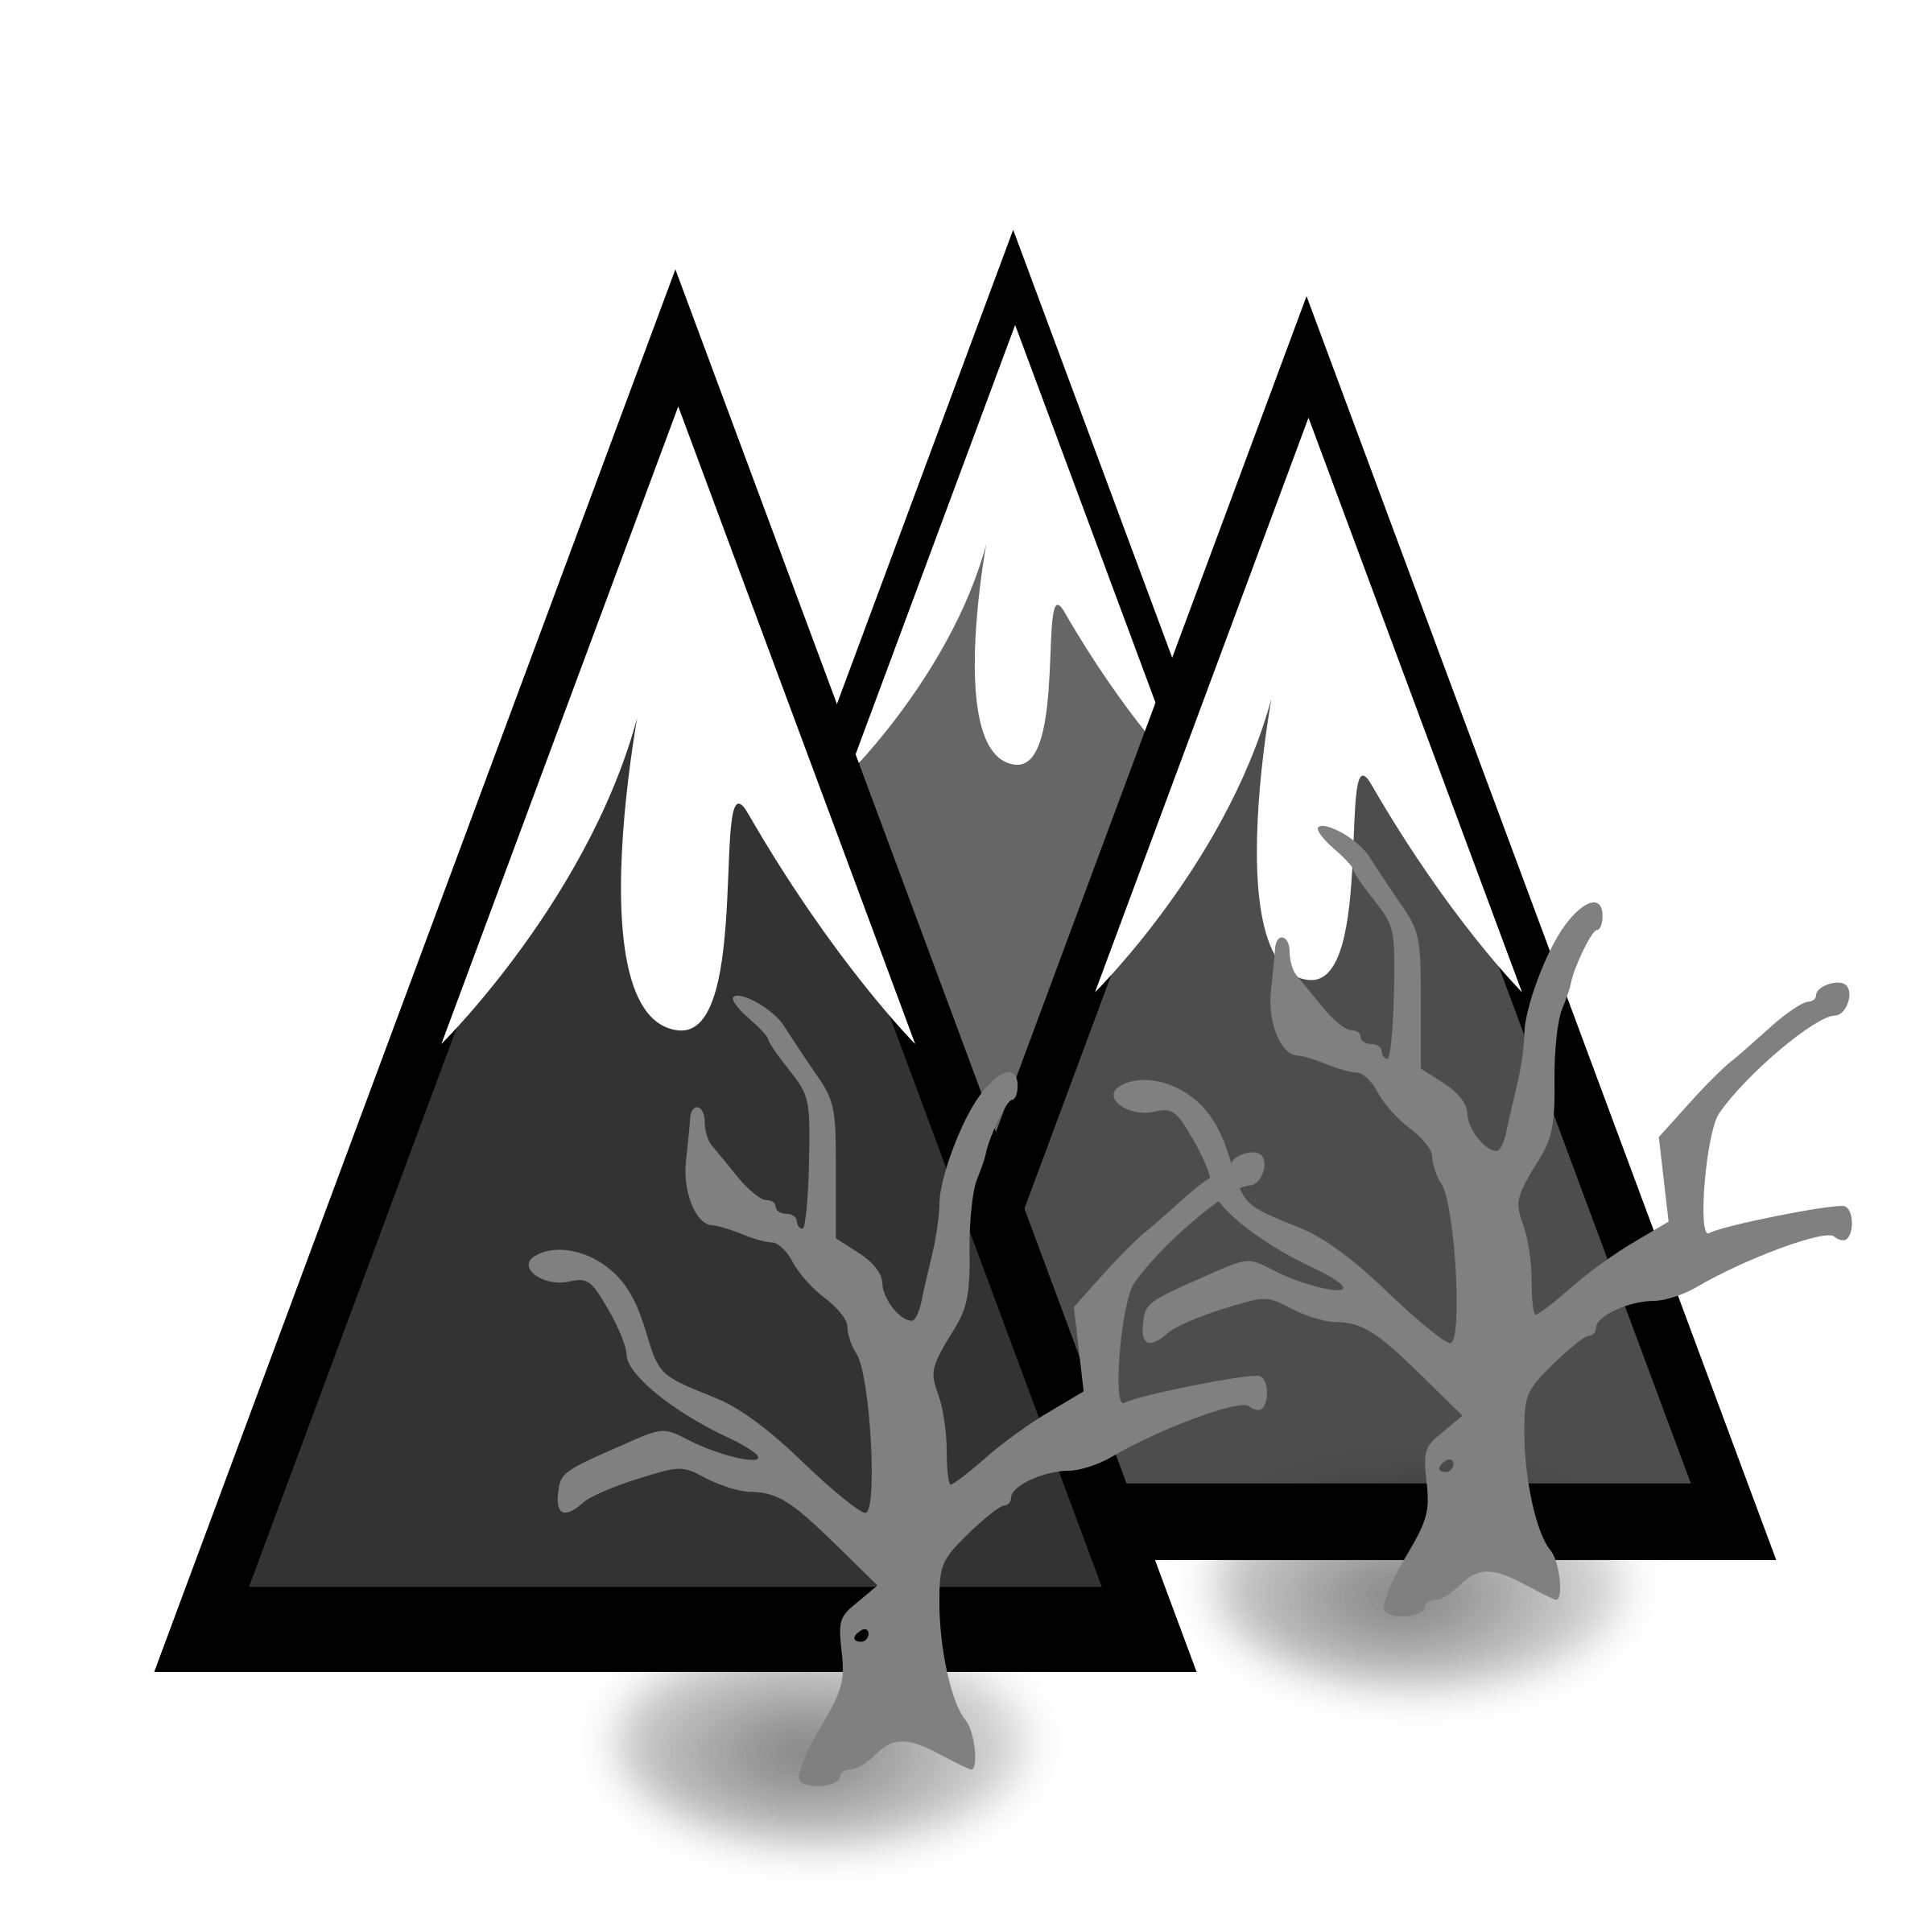 Clipart mountains black and white. Dead forest big image